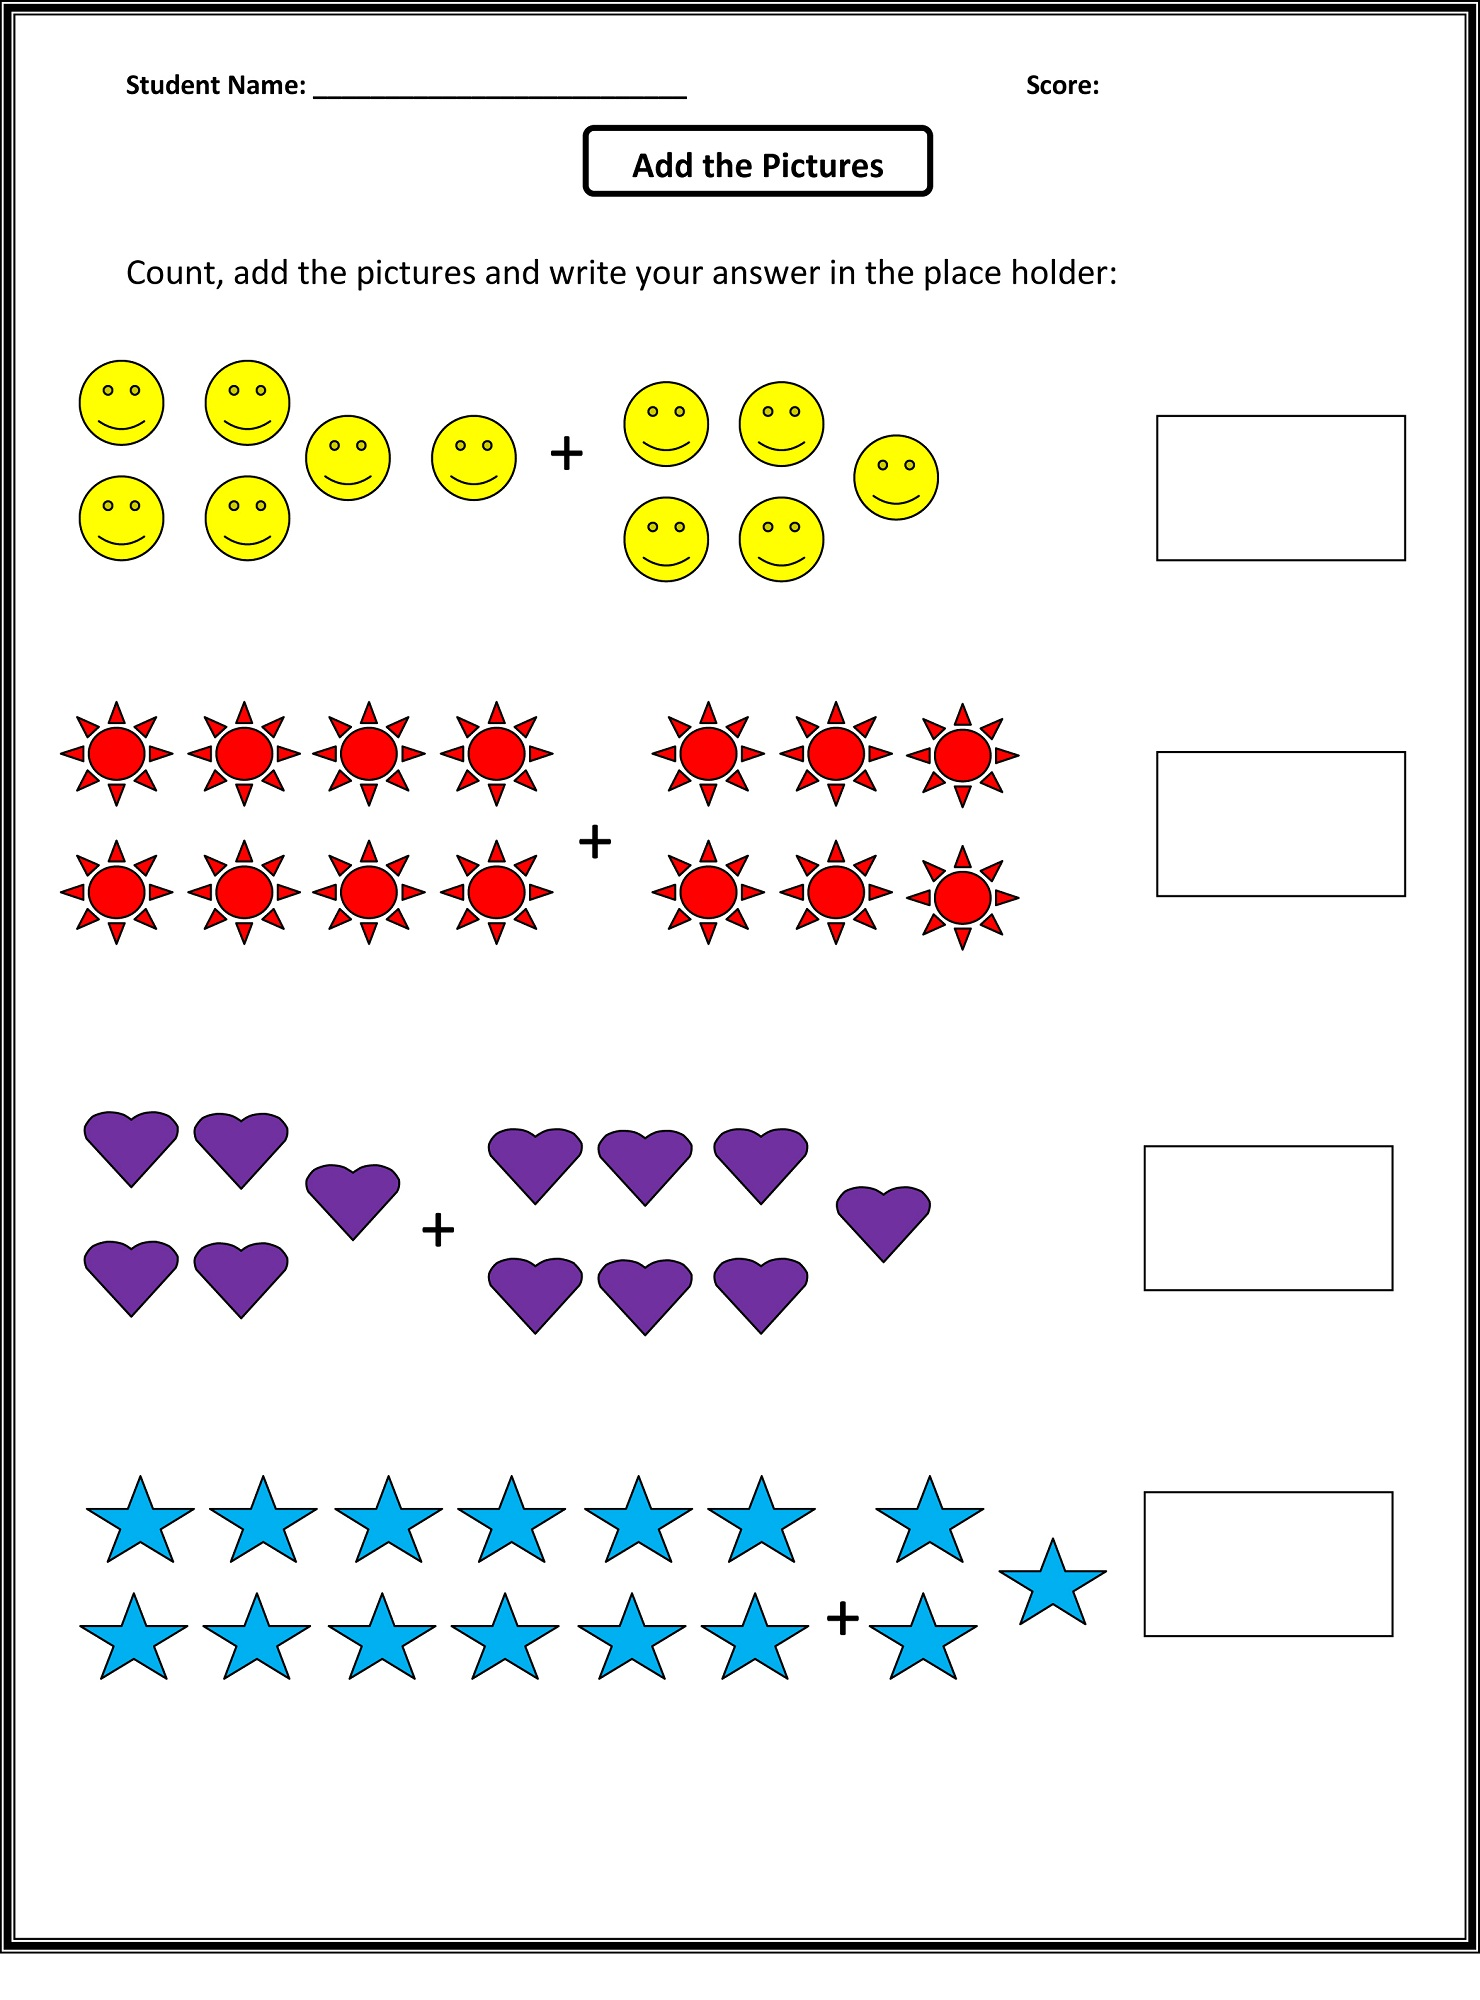 Worksheet Maths Worksheet Grade 1 grade 1 worksheets for learning activity shelter addition math